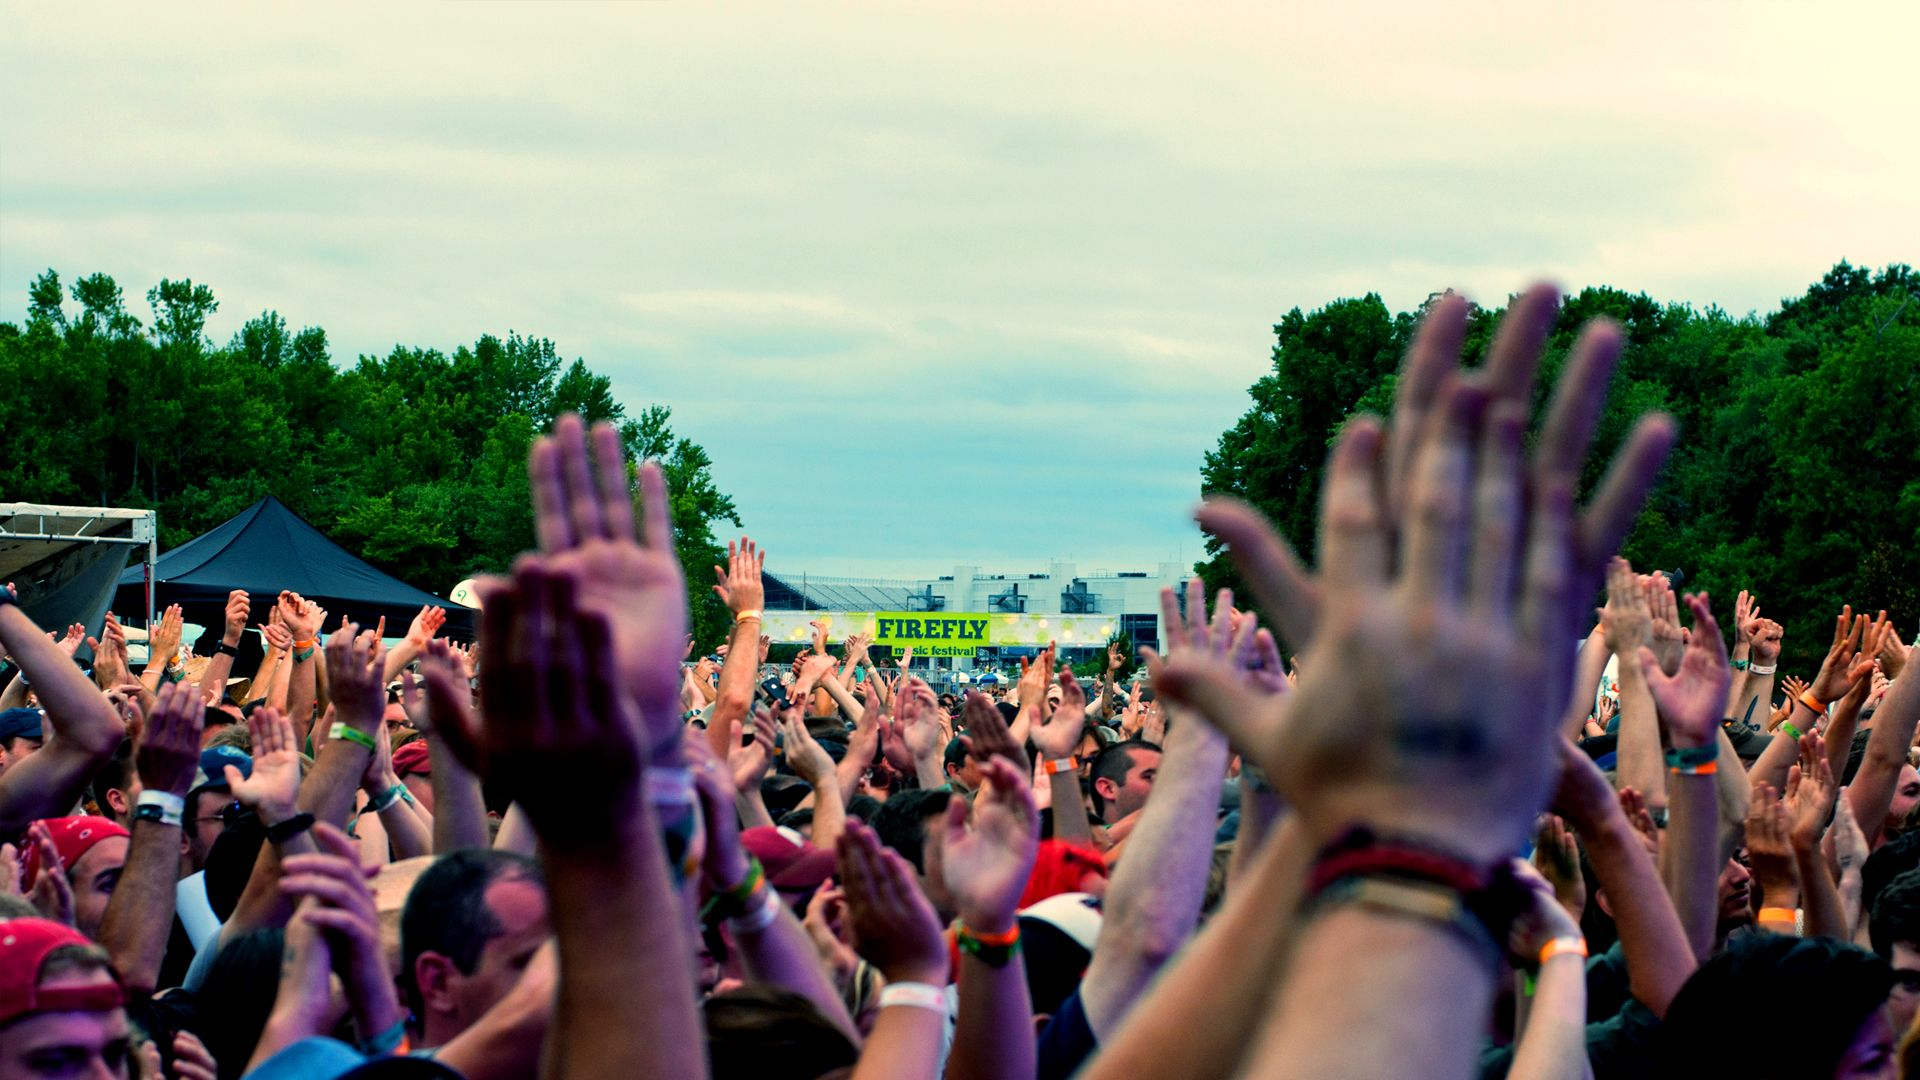 Why I Love The Woodlands: A Music Festival Experience